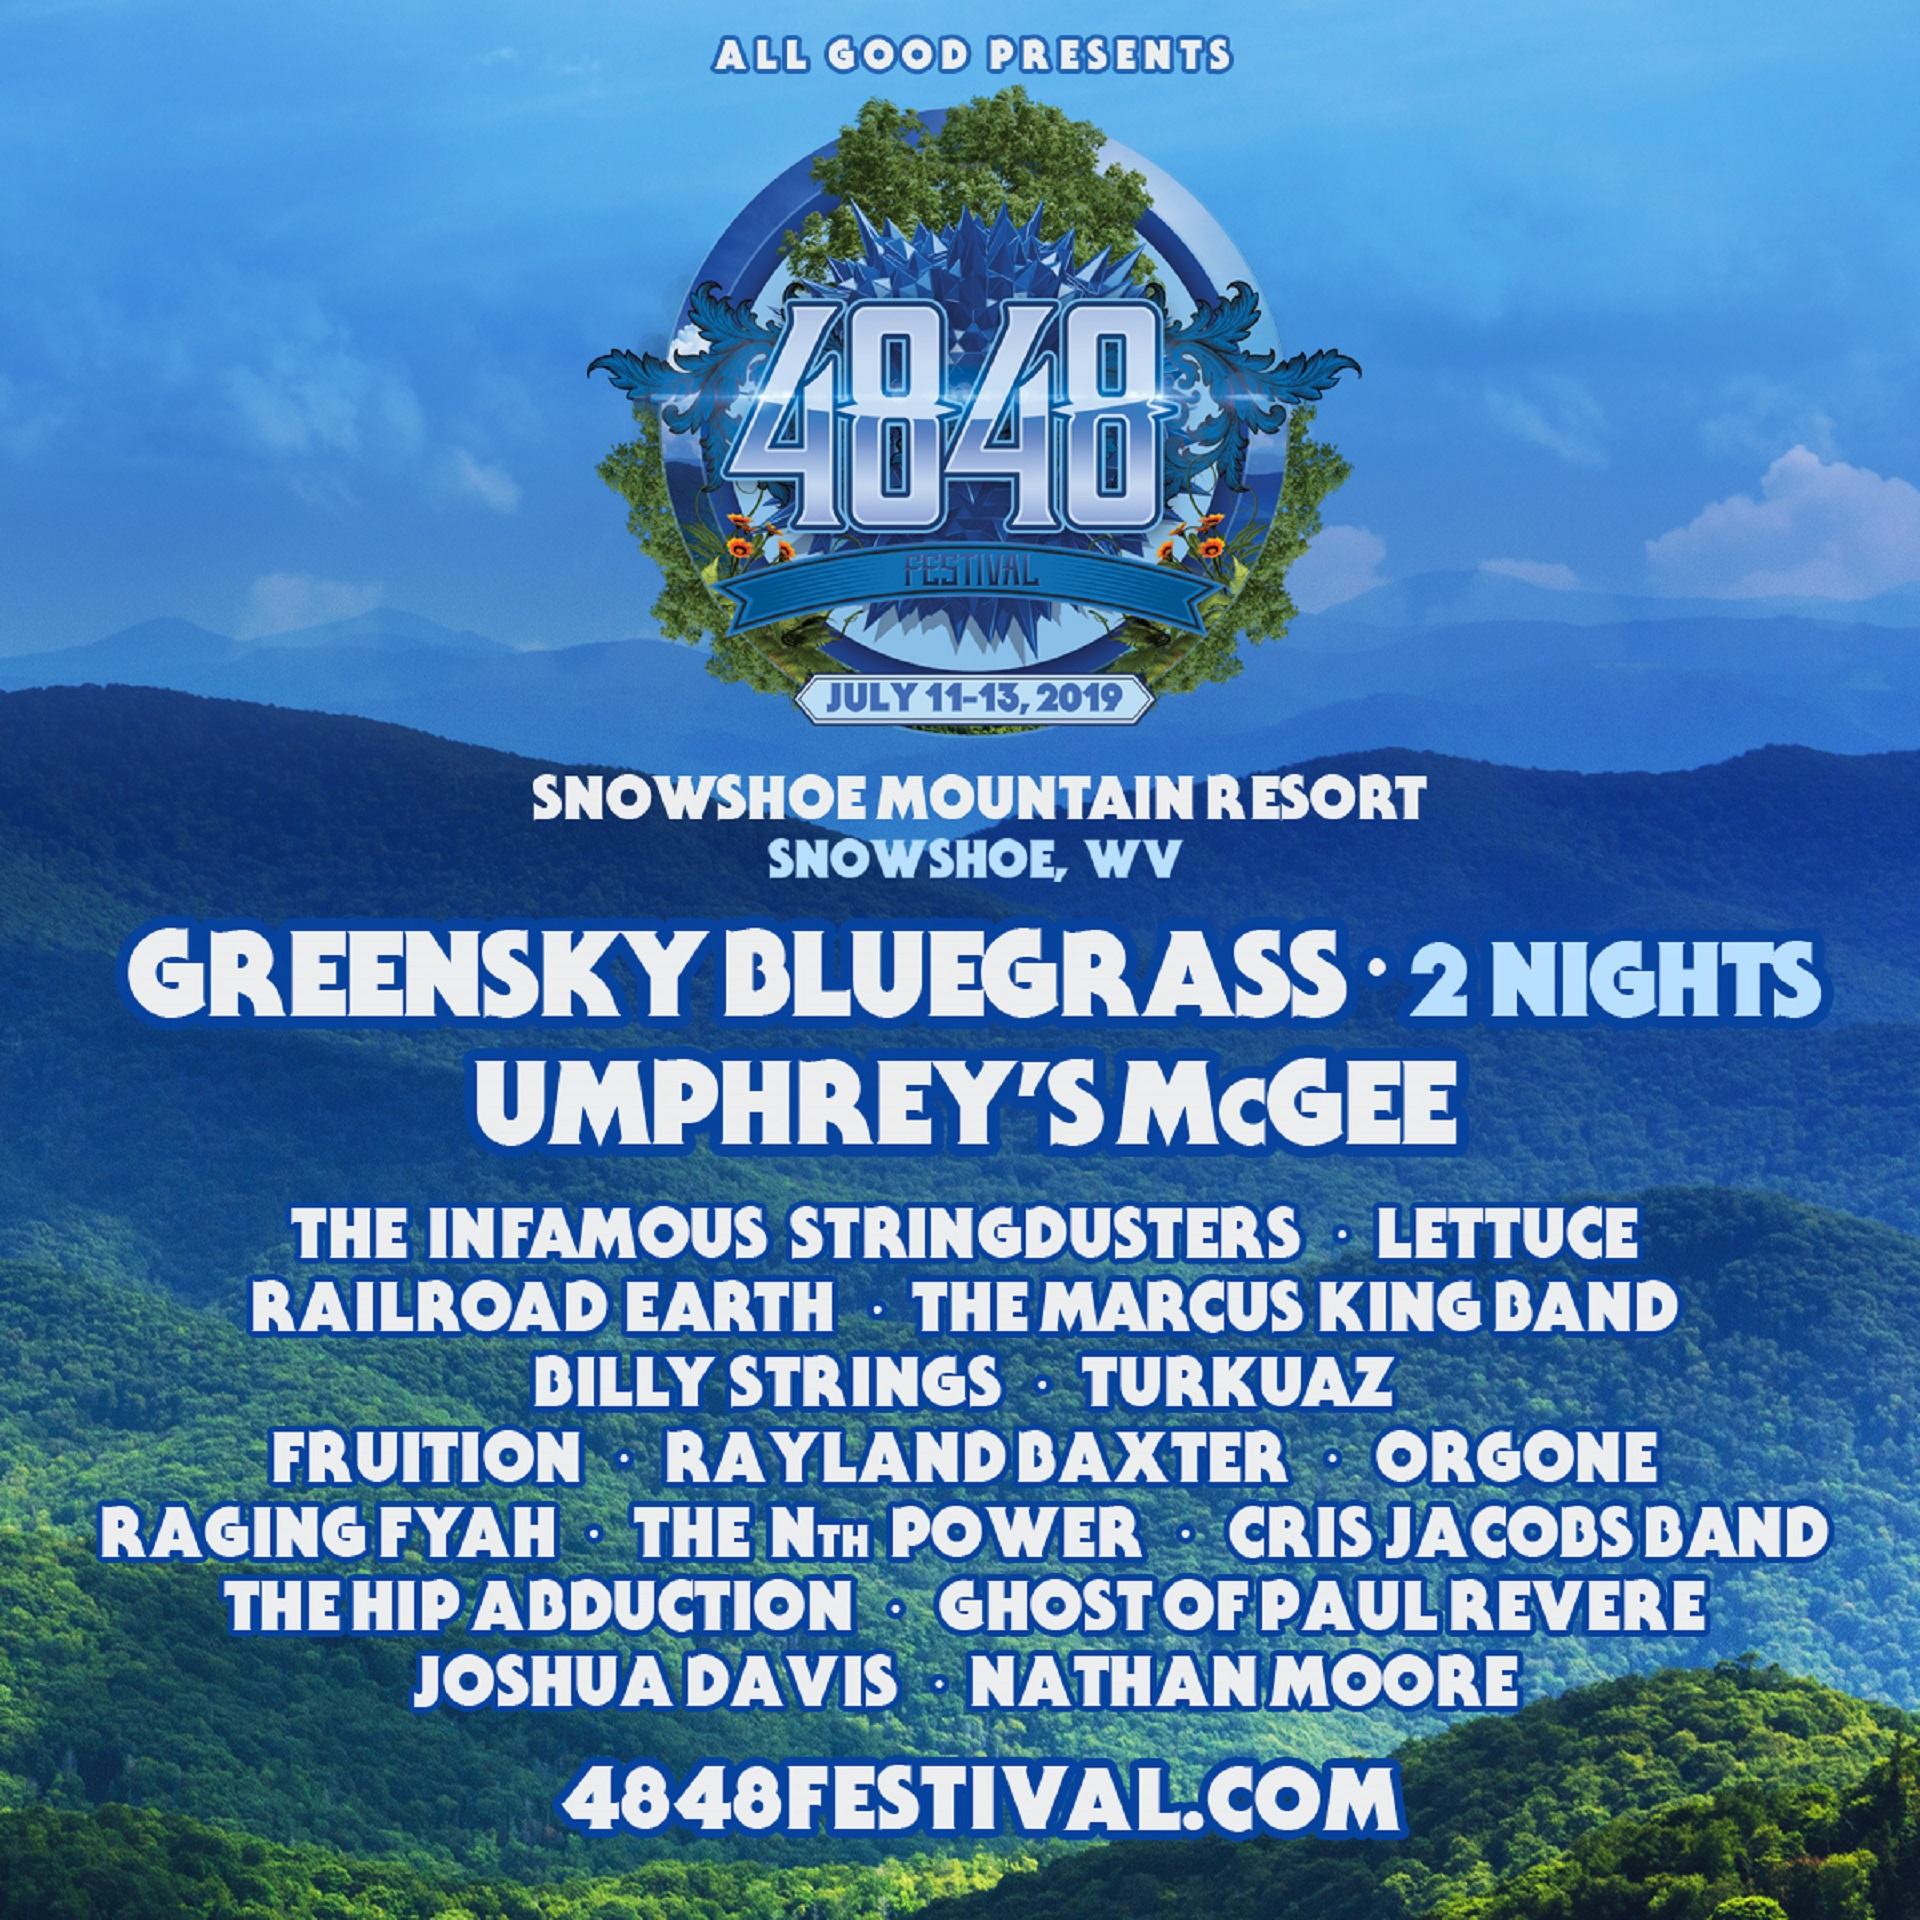 All Good Presents the Inaugural 4848 Festival at Snowshoe Mountain